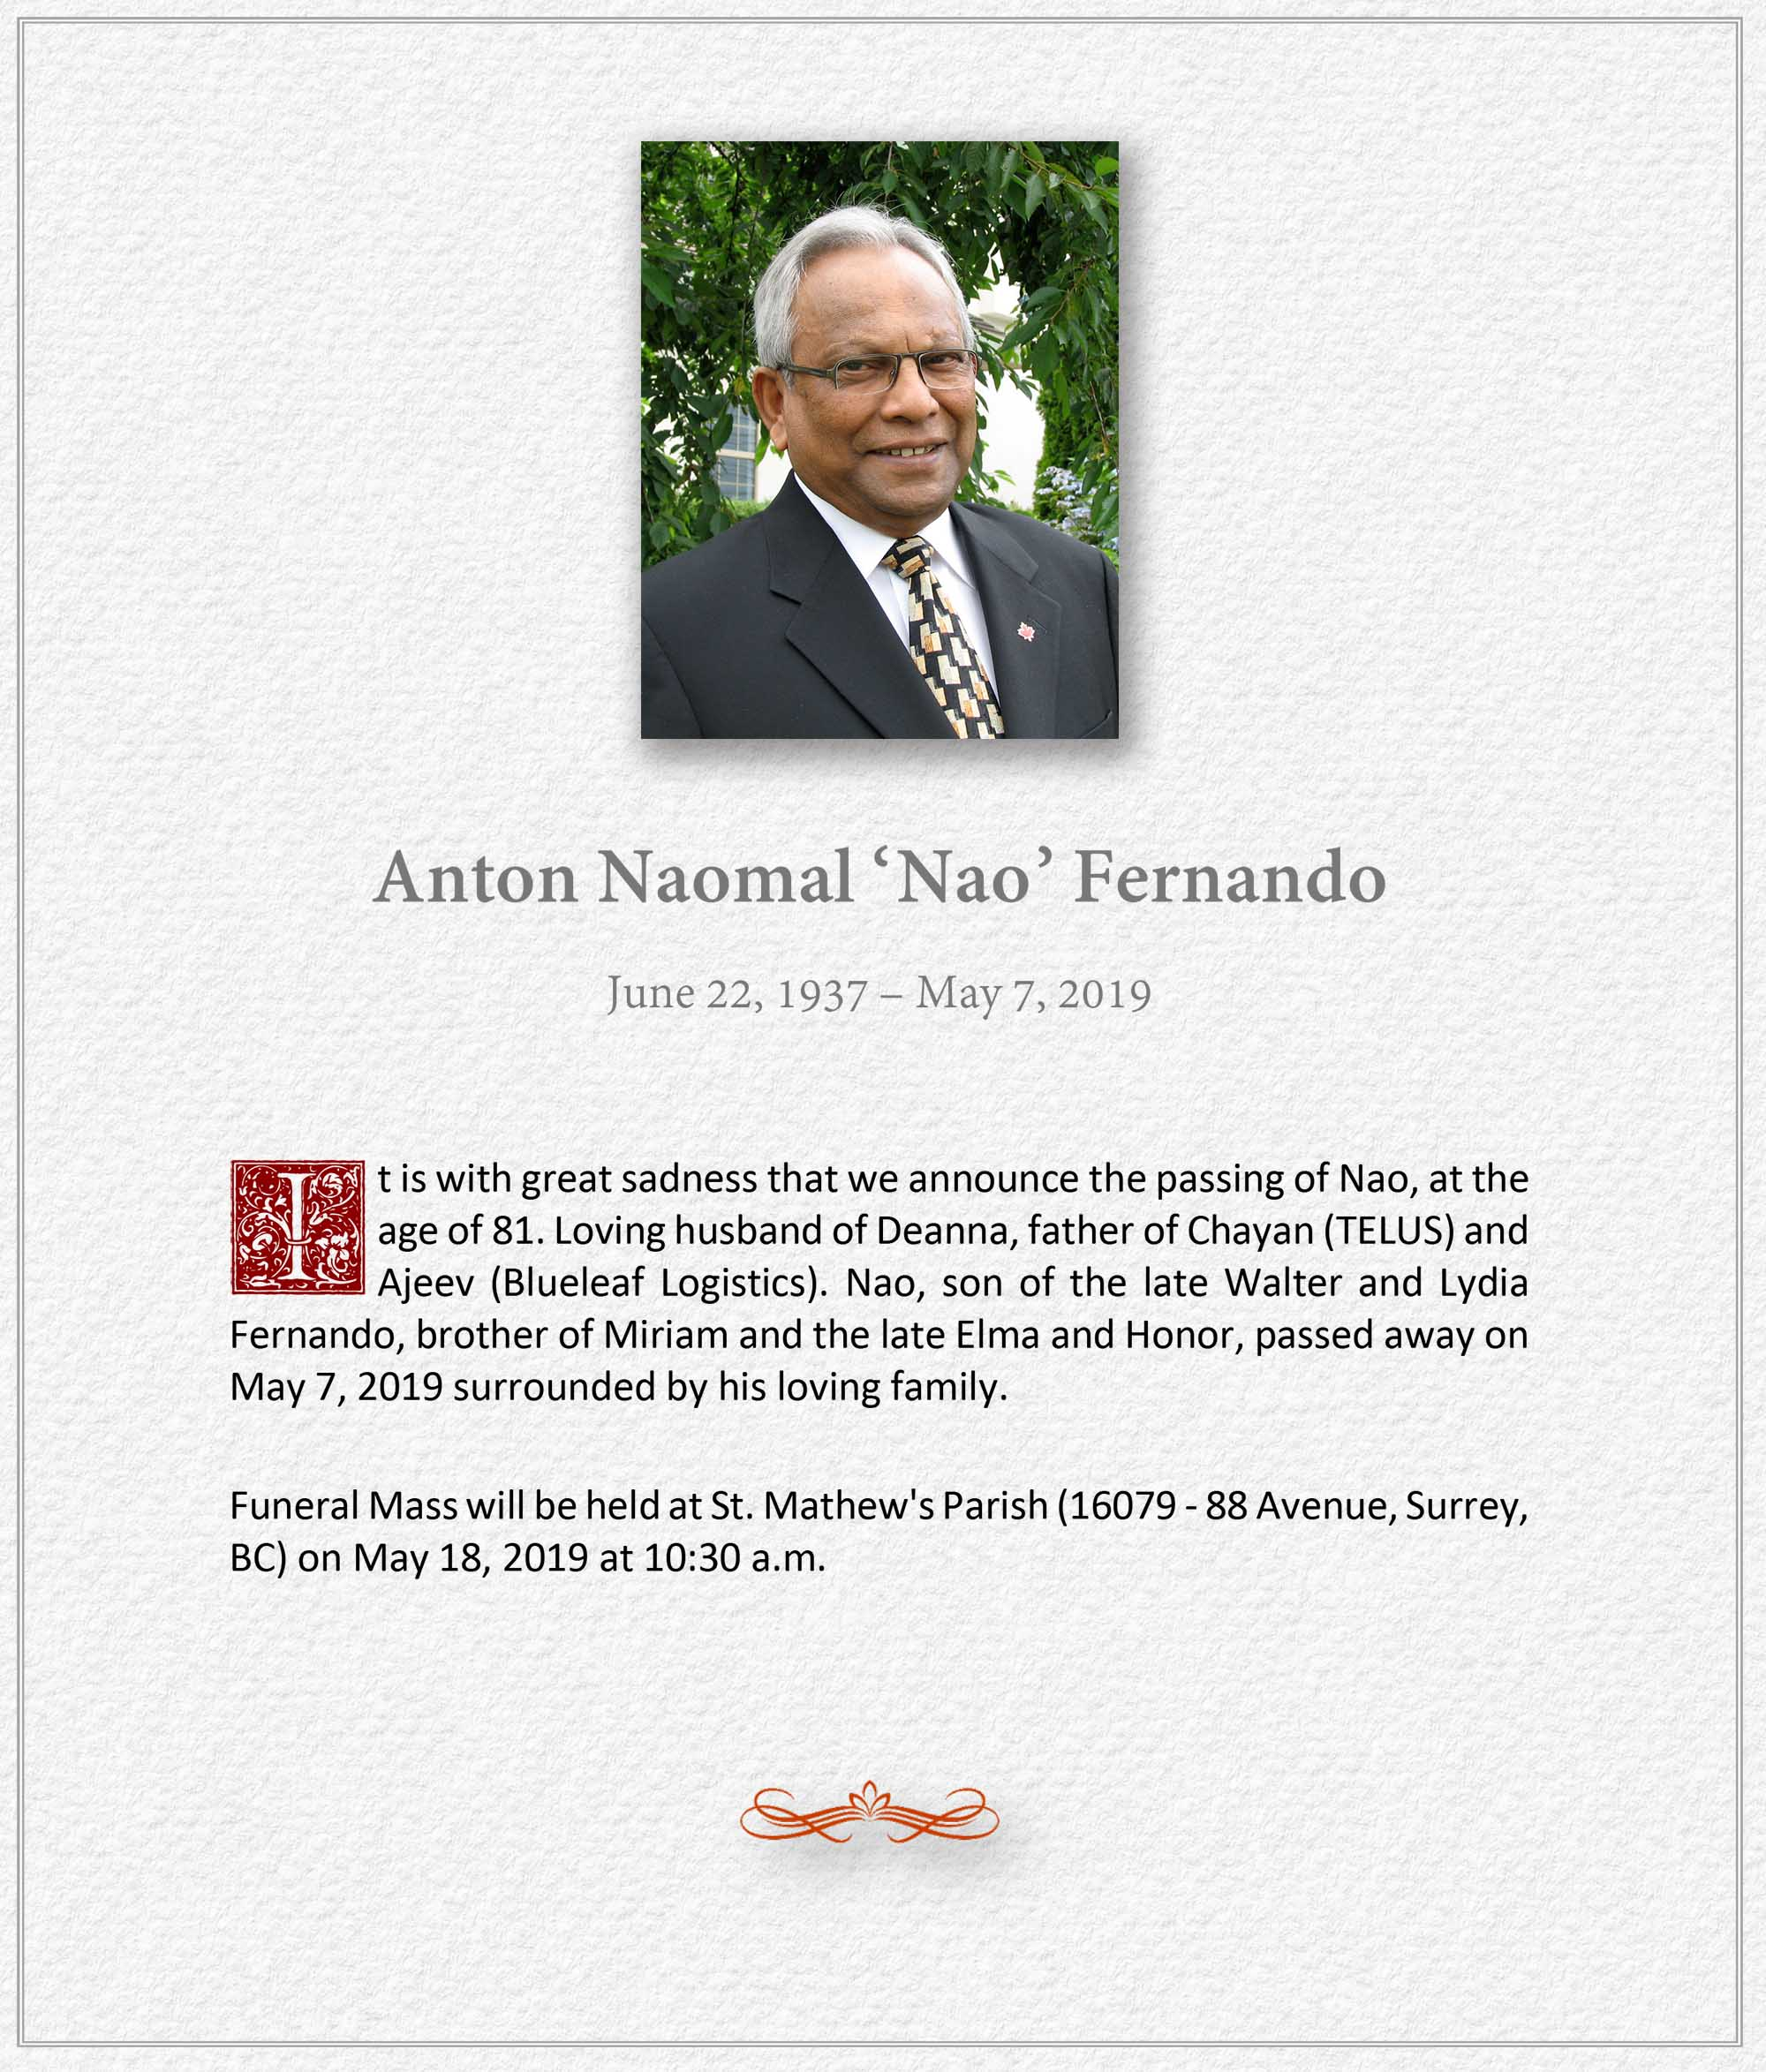 Obituary for Anton Naomal 'Nao' Fernando